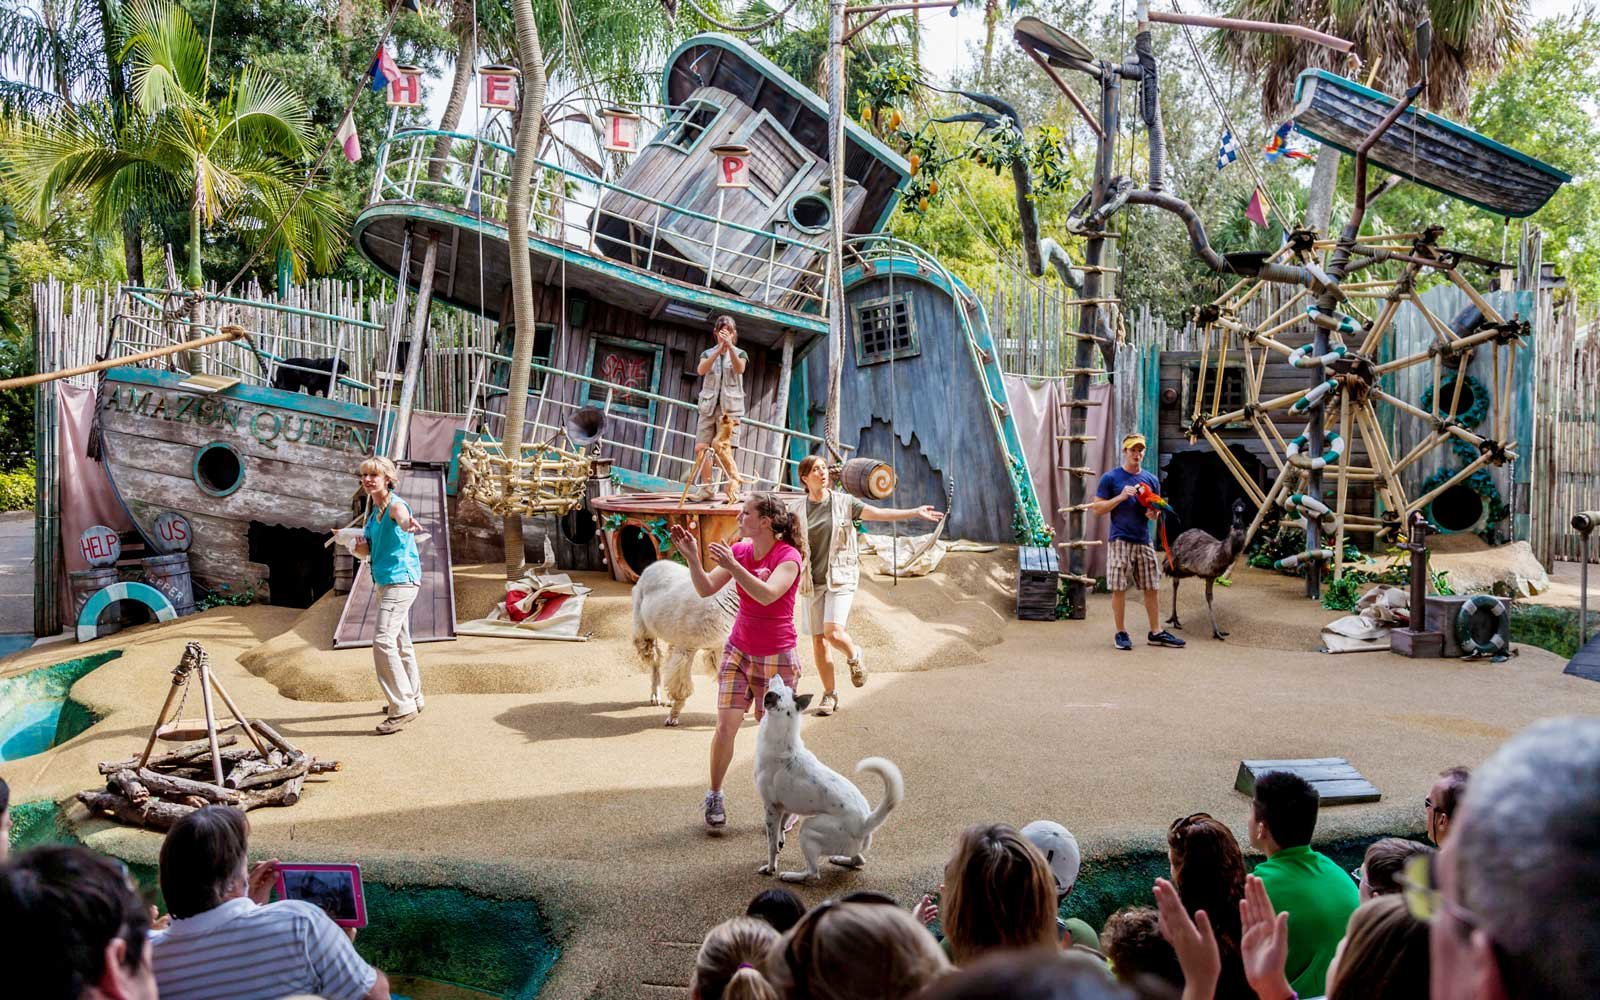 Attractions At Busch Gardens Tampa